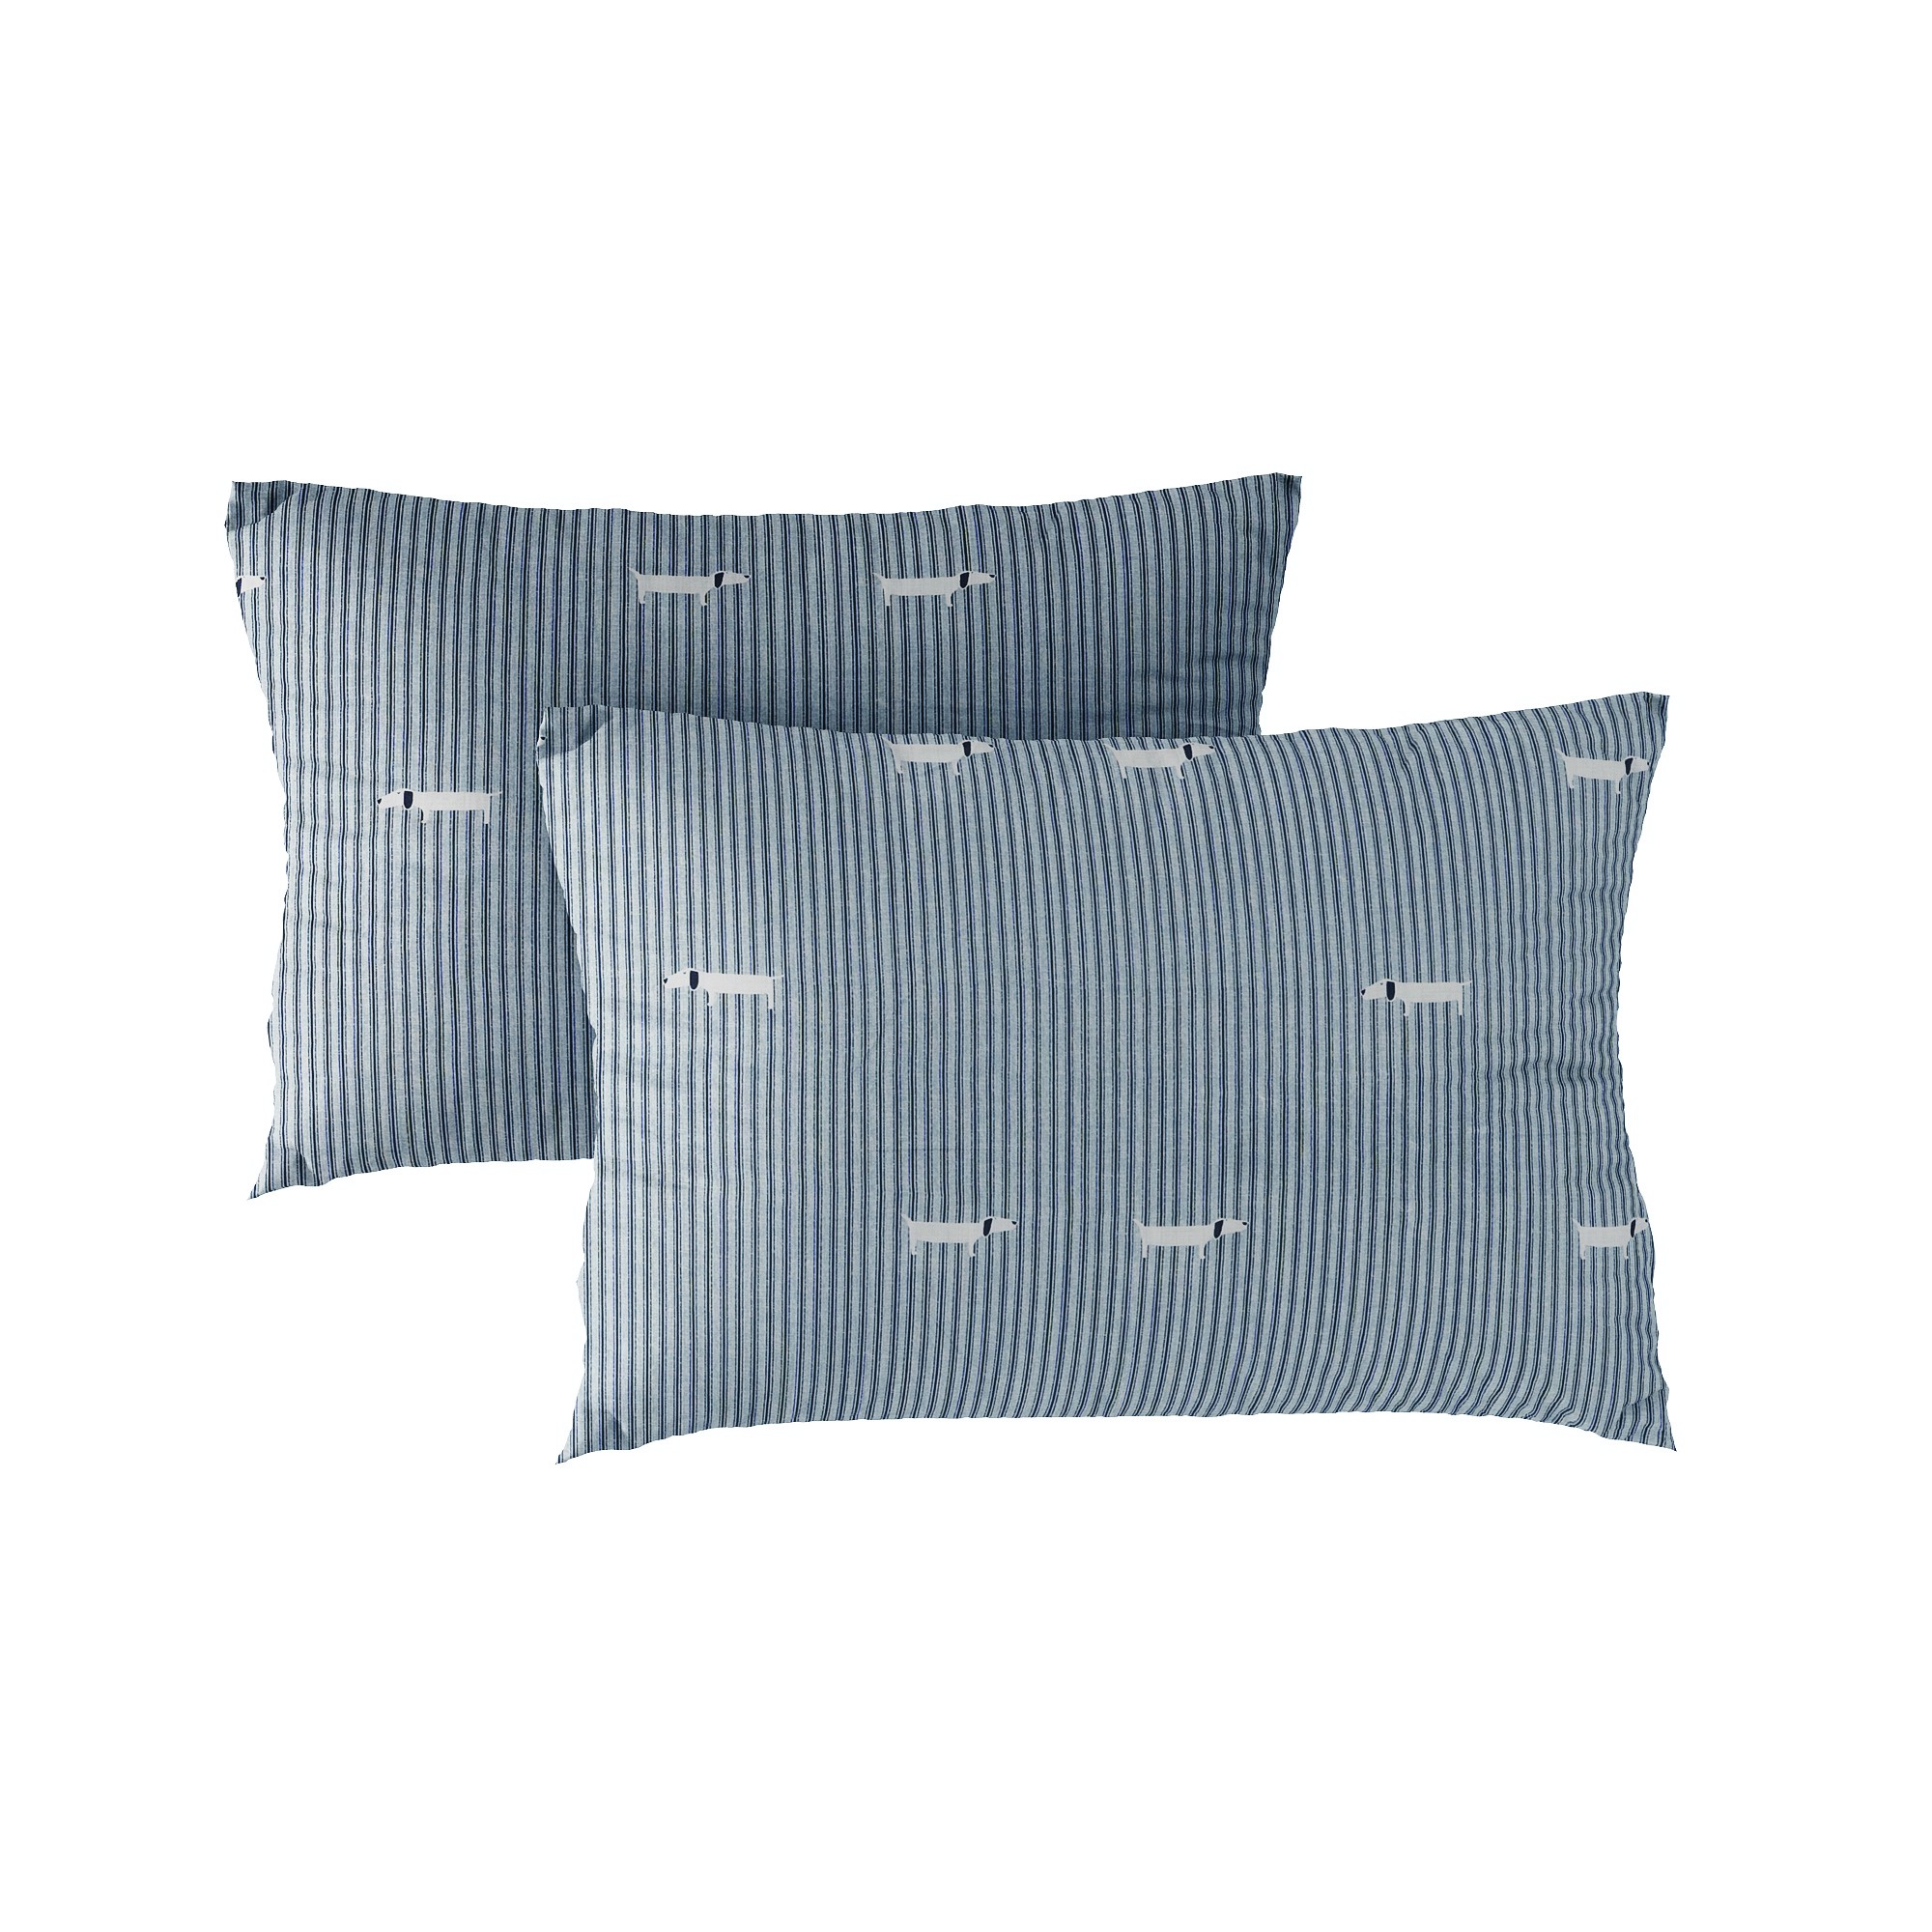 Pillow case 220 Dachshund on grey